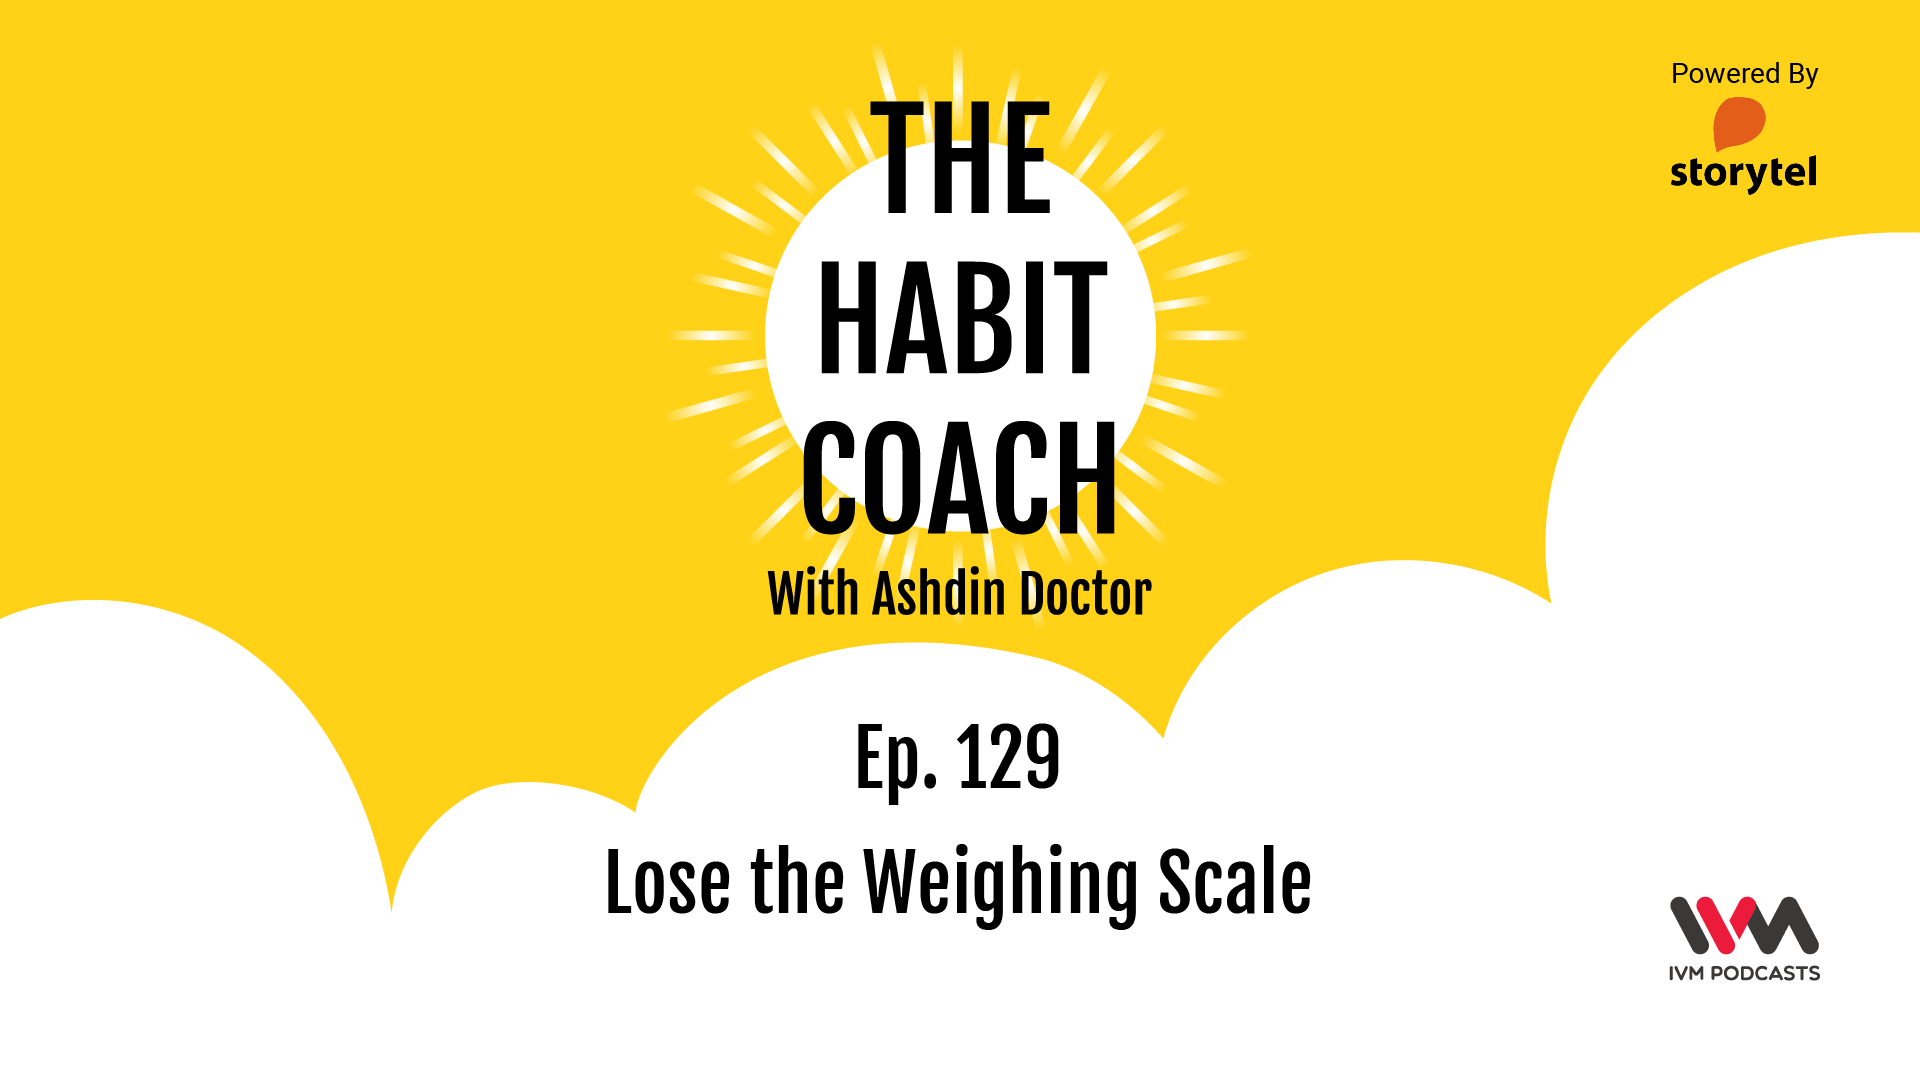 TheHabitCoachEpisode129.png